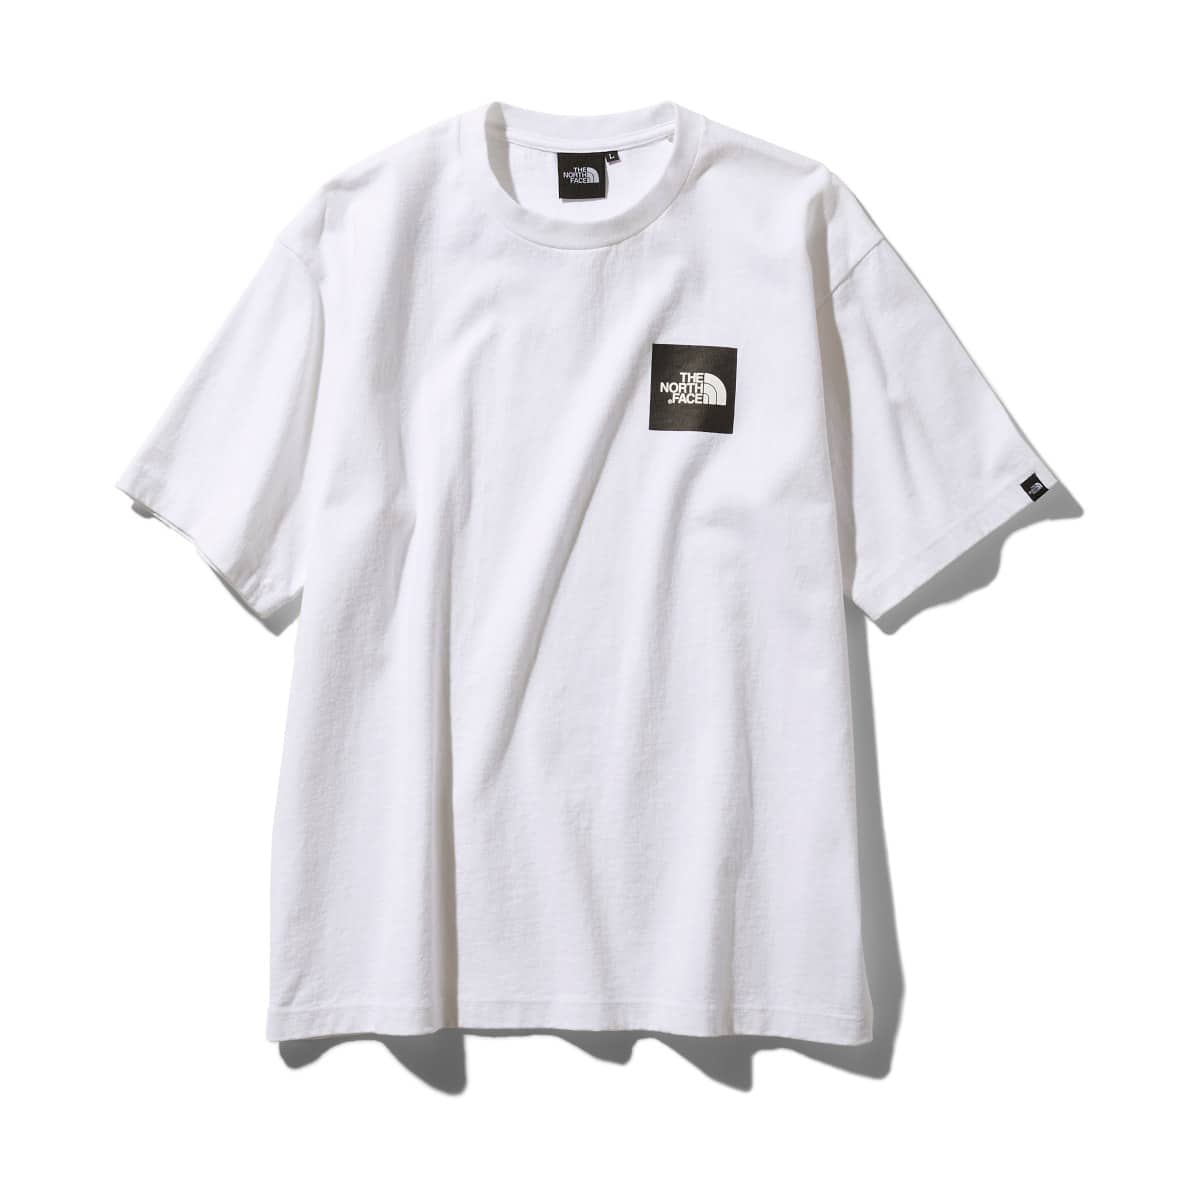 THE NORTH FACE S/S SQUARE LOGO TEE ホワイト 19FW-I_photo_large